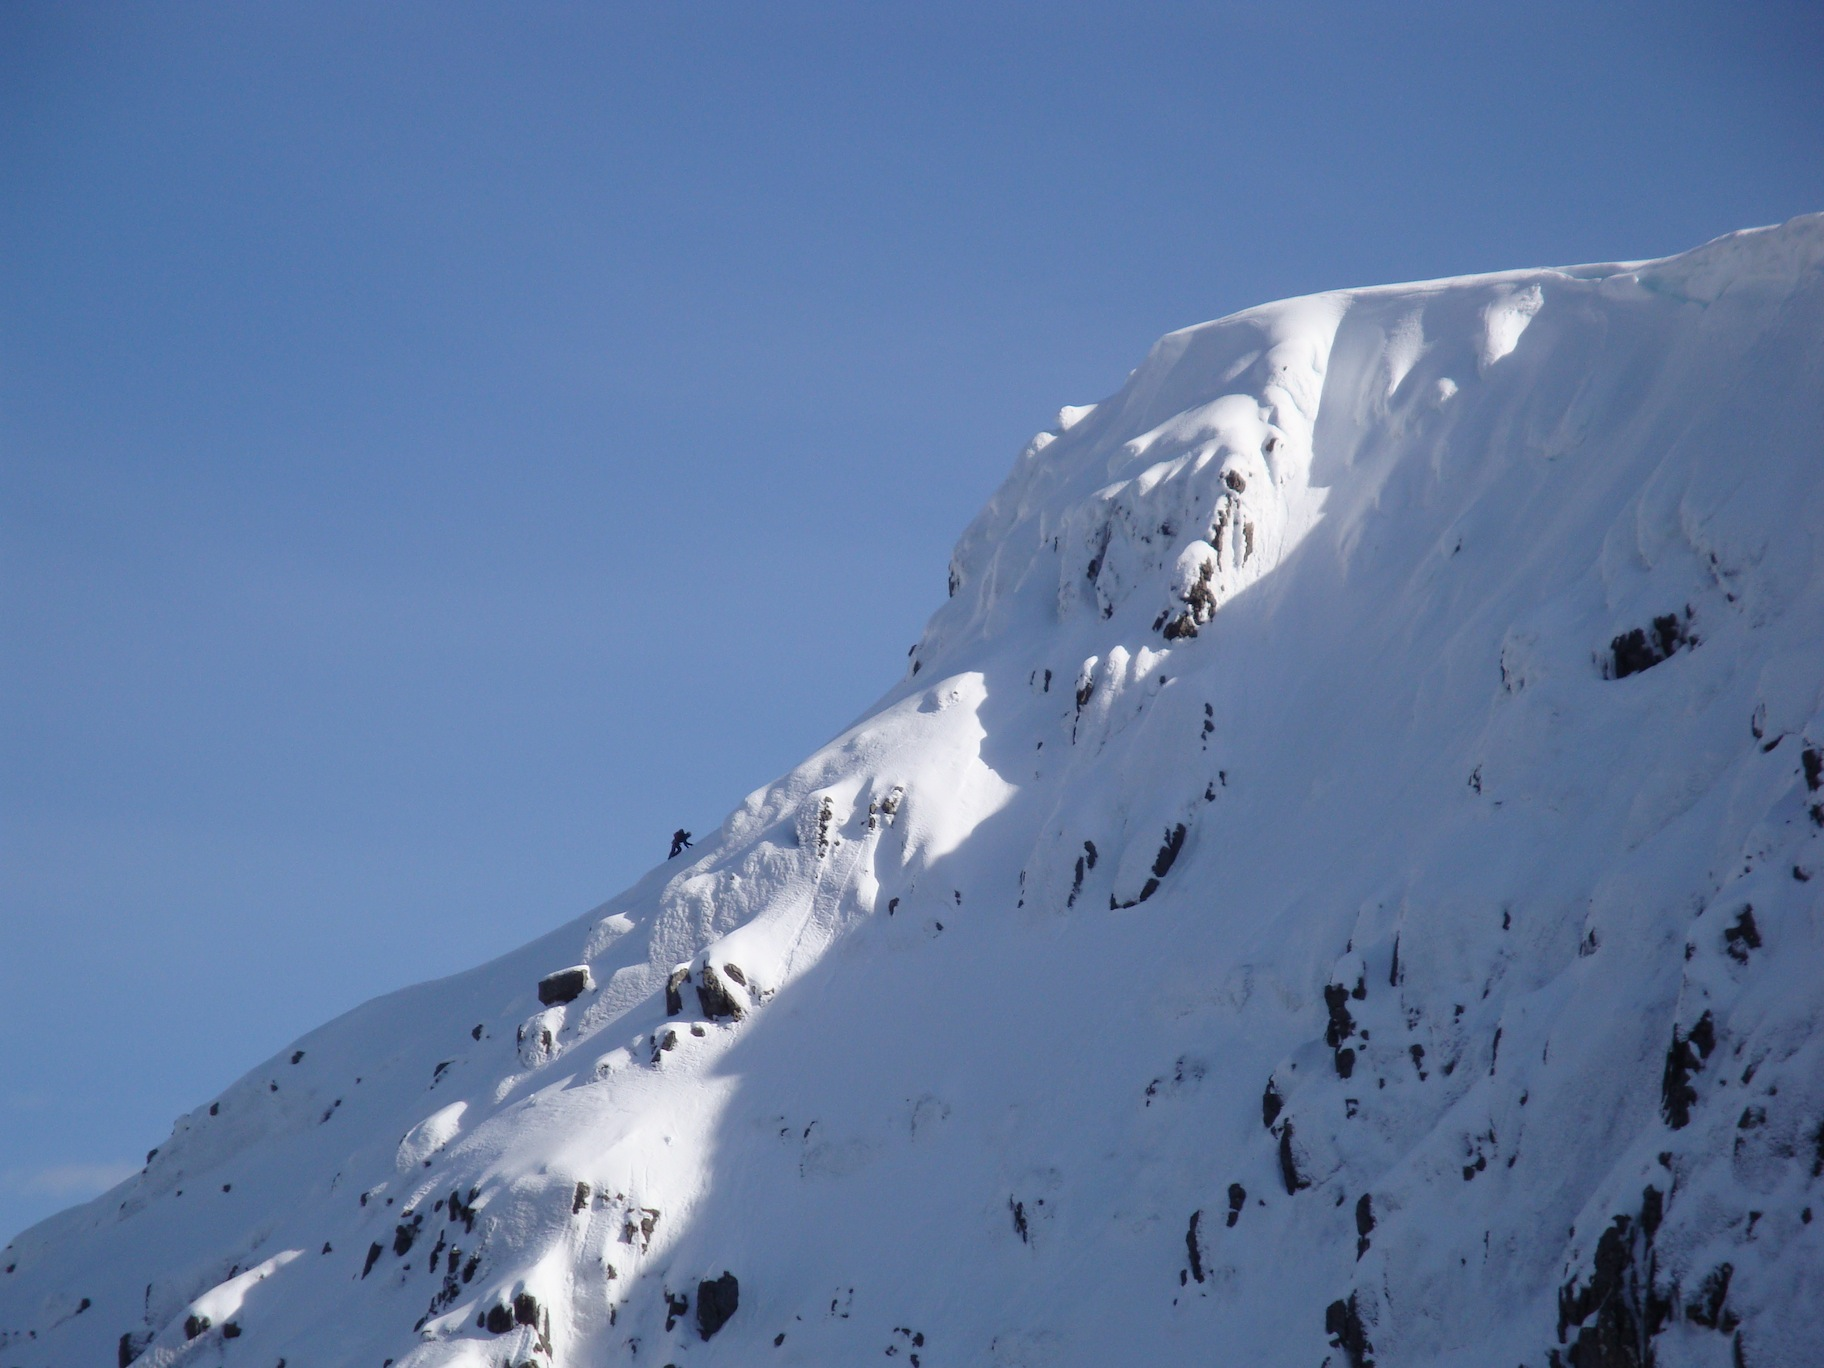 Winter Isnt Over Till Its Over >> Not Over Till It S Over York Alpine Club Blog